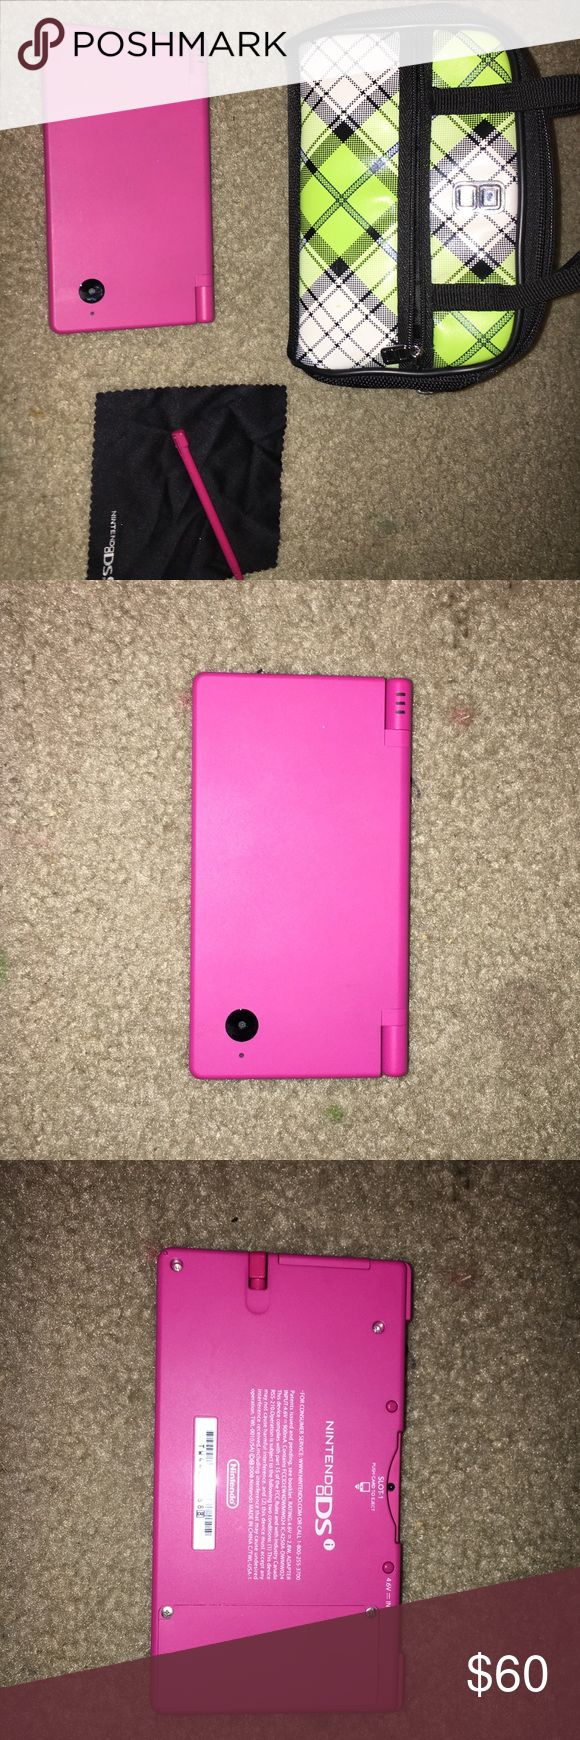 Barely Used Pink Nintendo DSi💕 Barely ever used Nintendo DSi. Has stylus, extra stylus, carrying bag that also holds games, and stylus. All original, just missing the charger (you can get chargers from places like game stop for about $10 or less!)  also has two games which were paid for downloaded on the DS😊 make an offer, I can negotiate! Nintendo Other